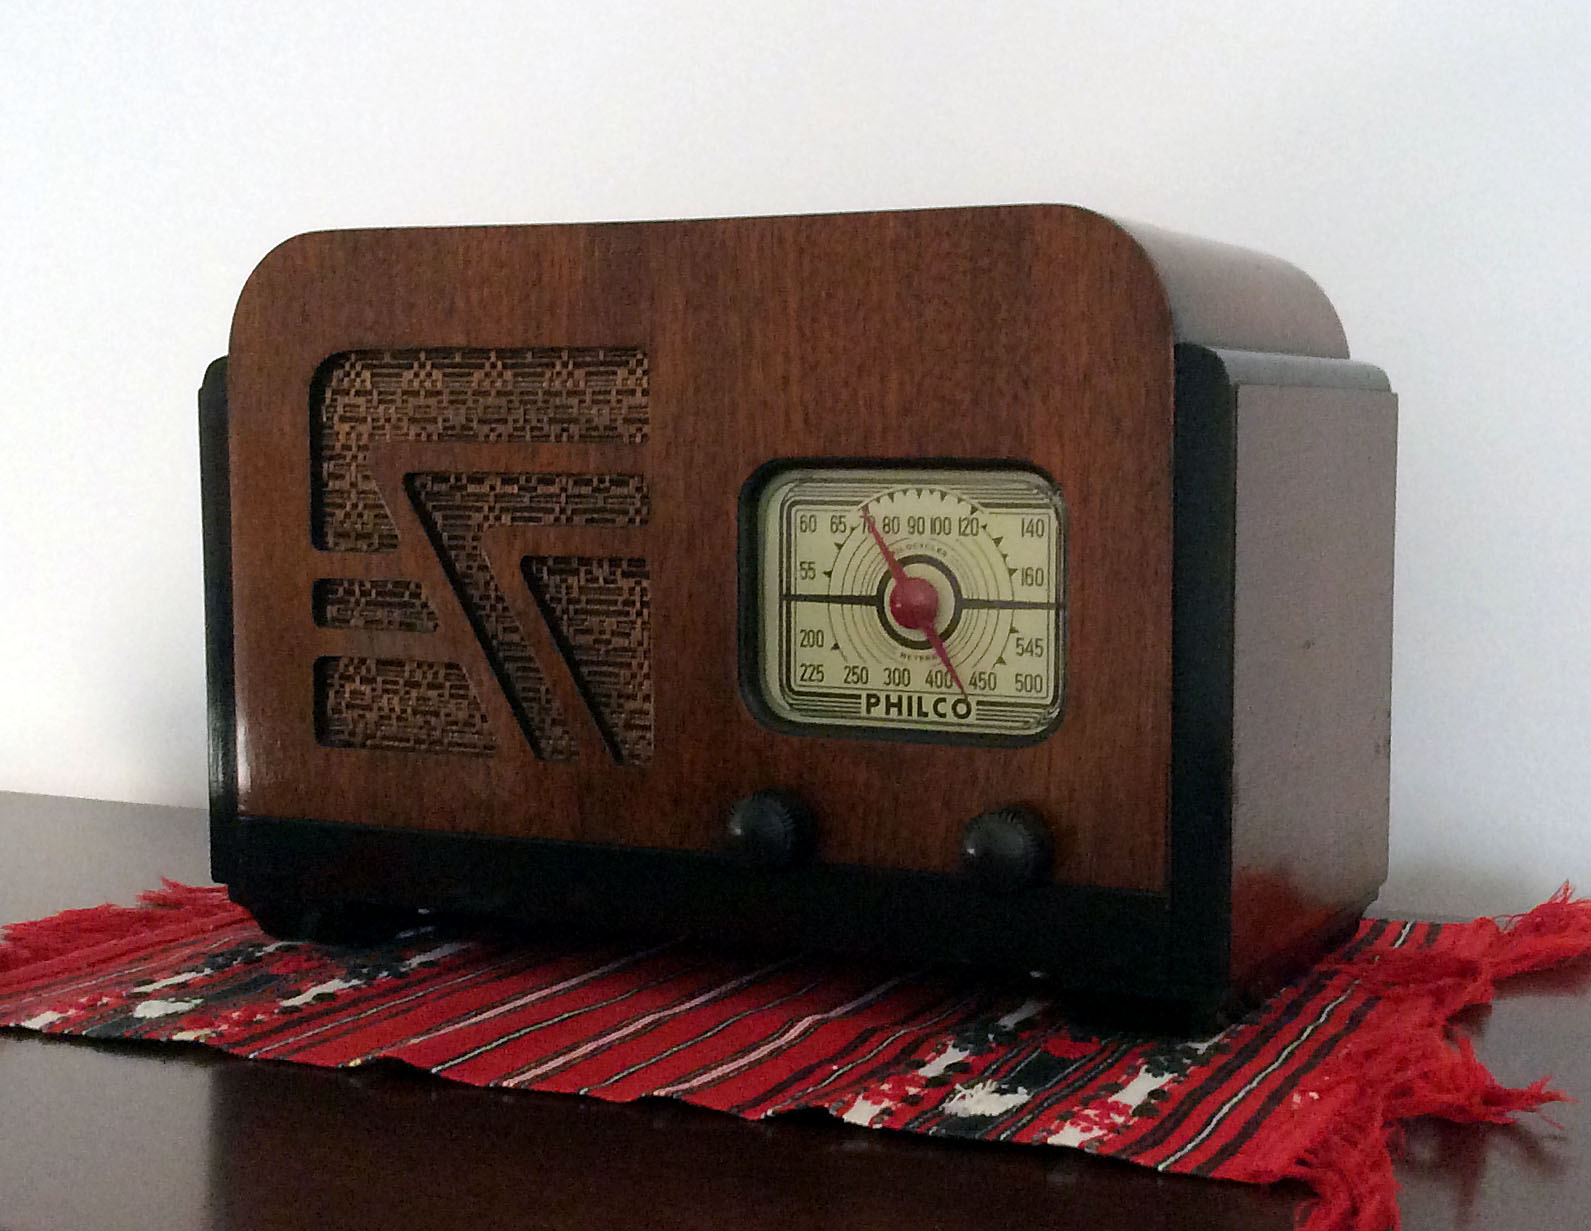 Philco 32A<br />Fantastic radio found at an Antique barn. Here is the radio all cleaned up. It was filthy. Minor finish scratches and nails for the feet replaced with felt pads. : Figure 82 :